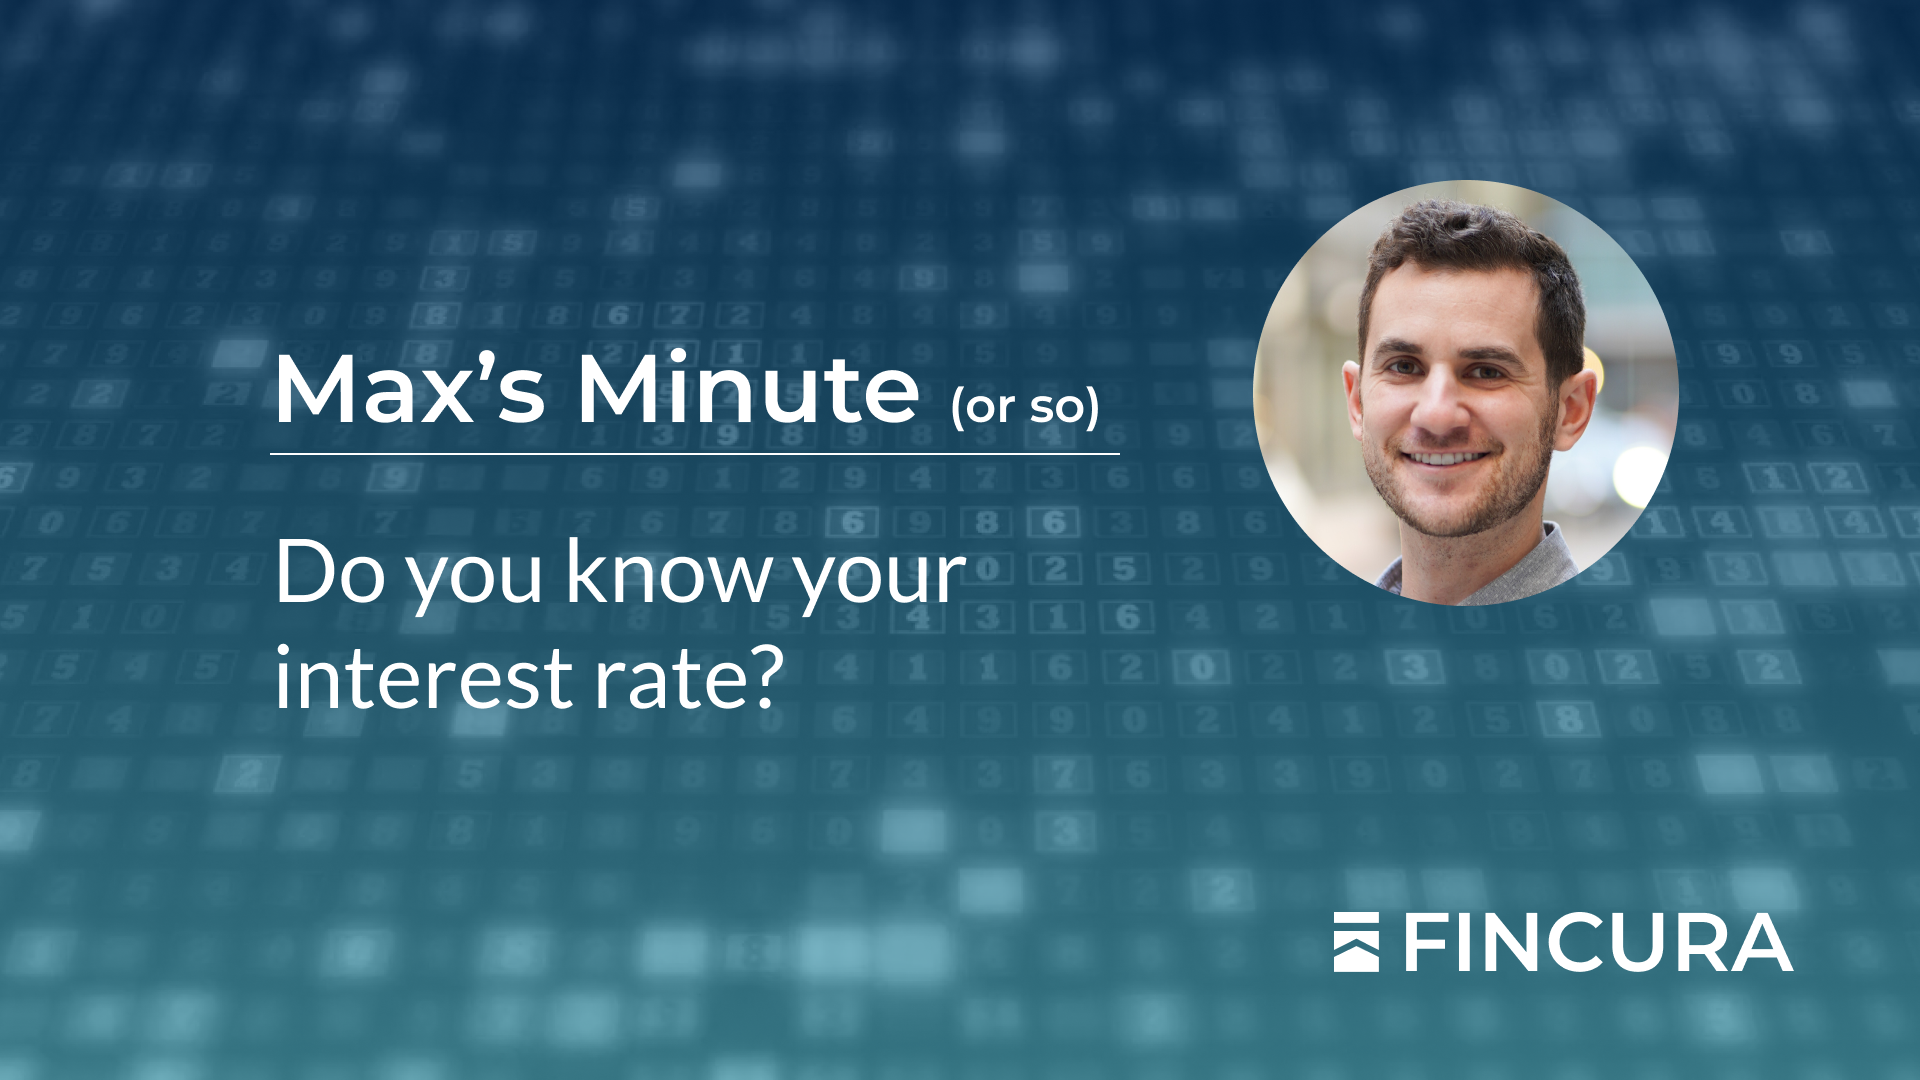 Fincura | Do you know your interest rate?